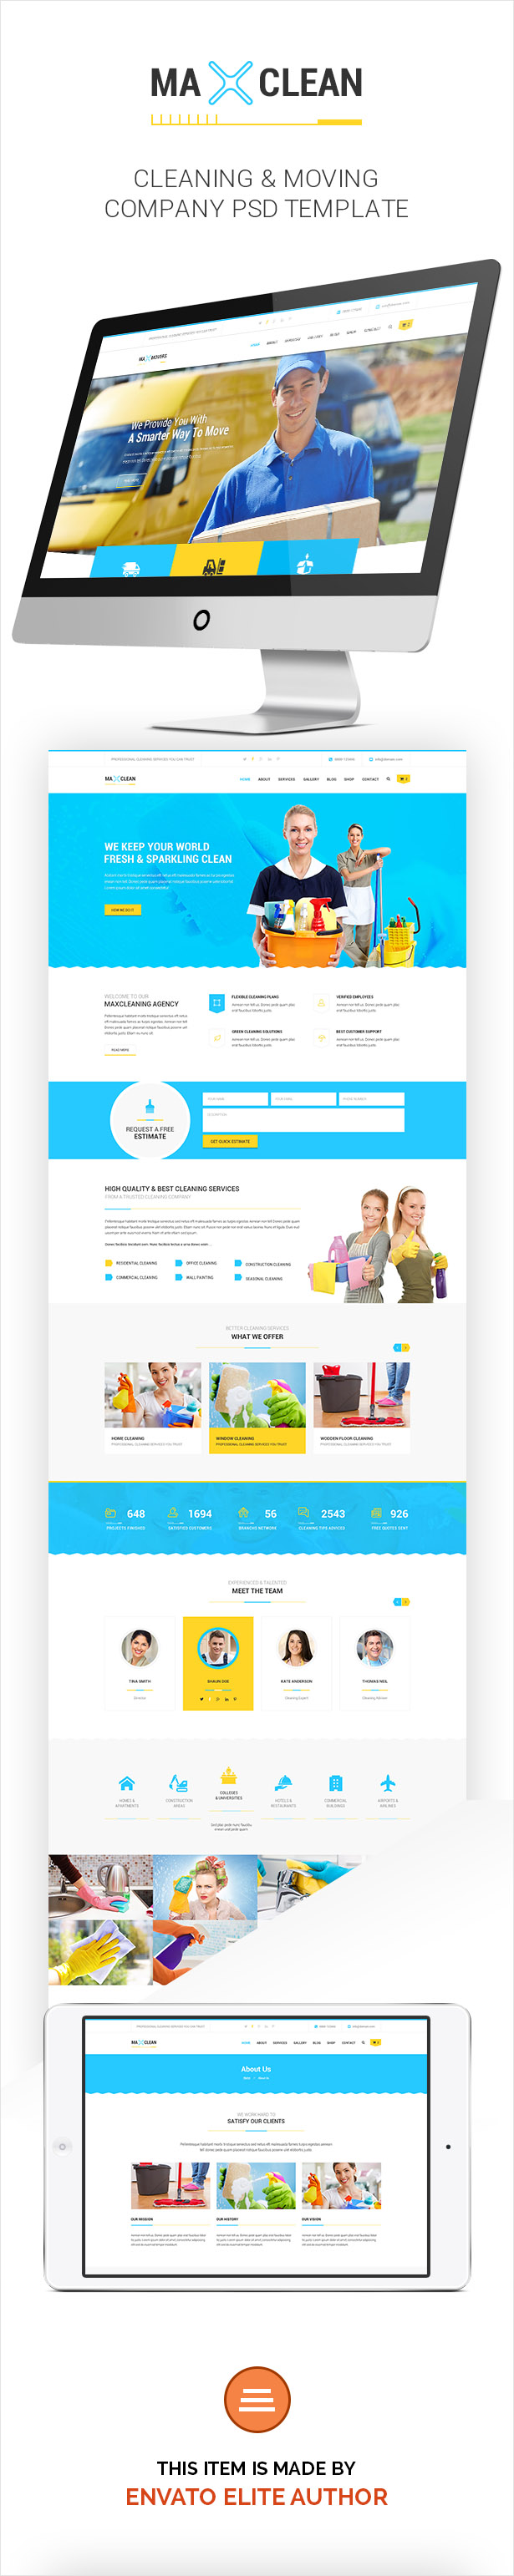 Max Cleaners & Movers - PSD Template - 1